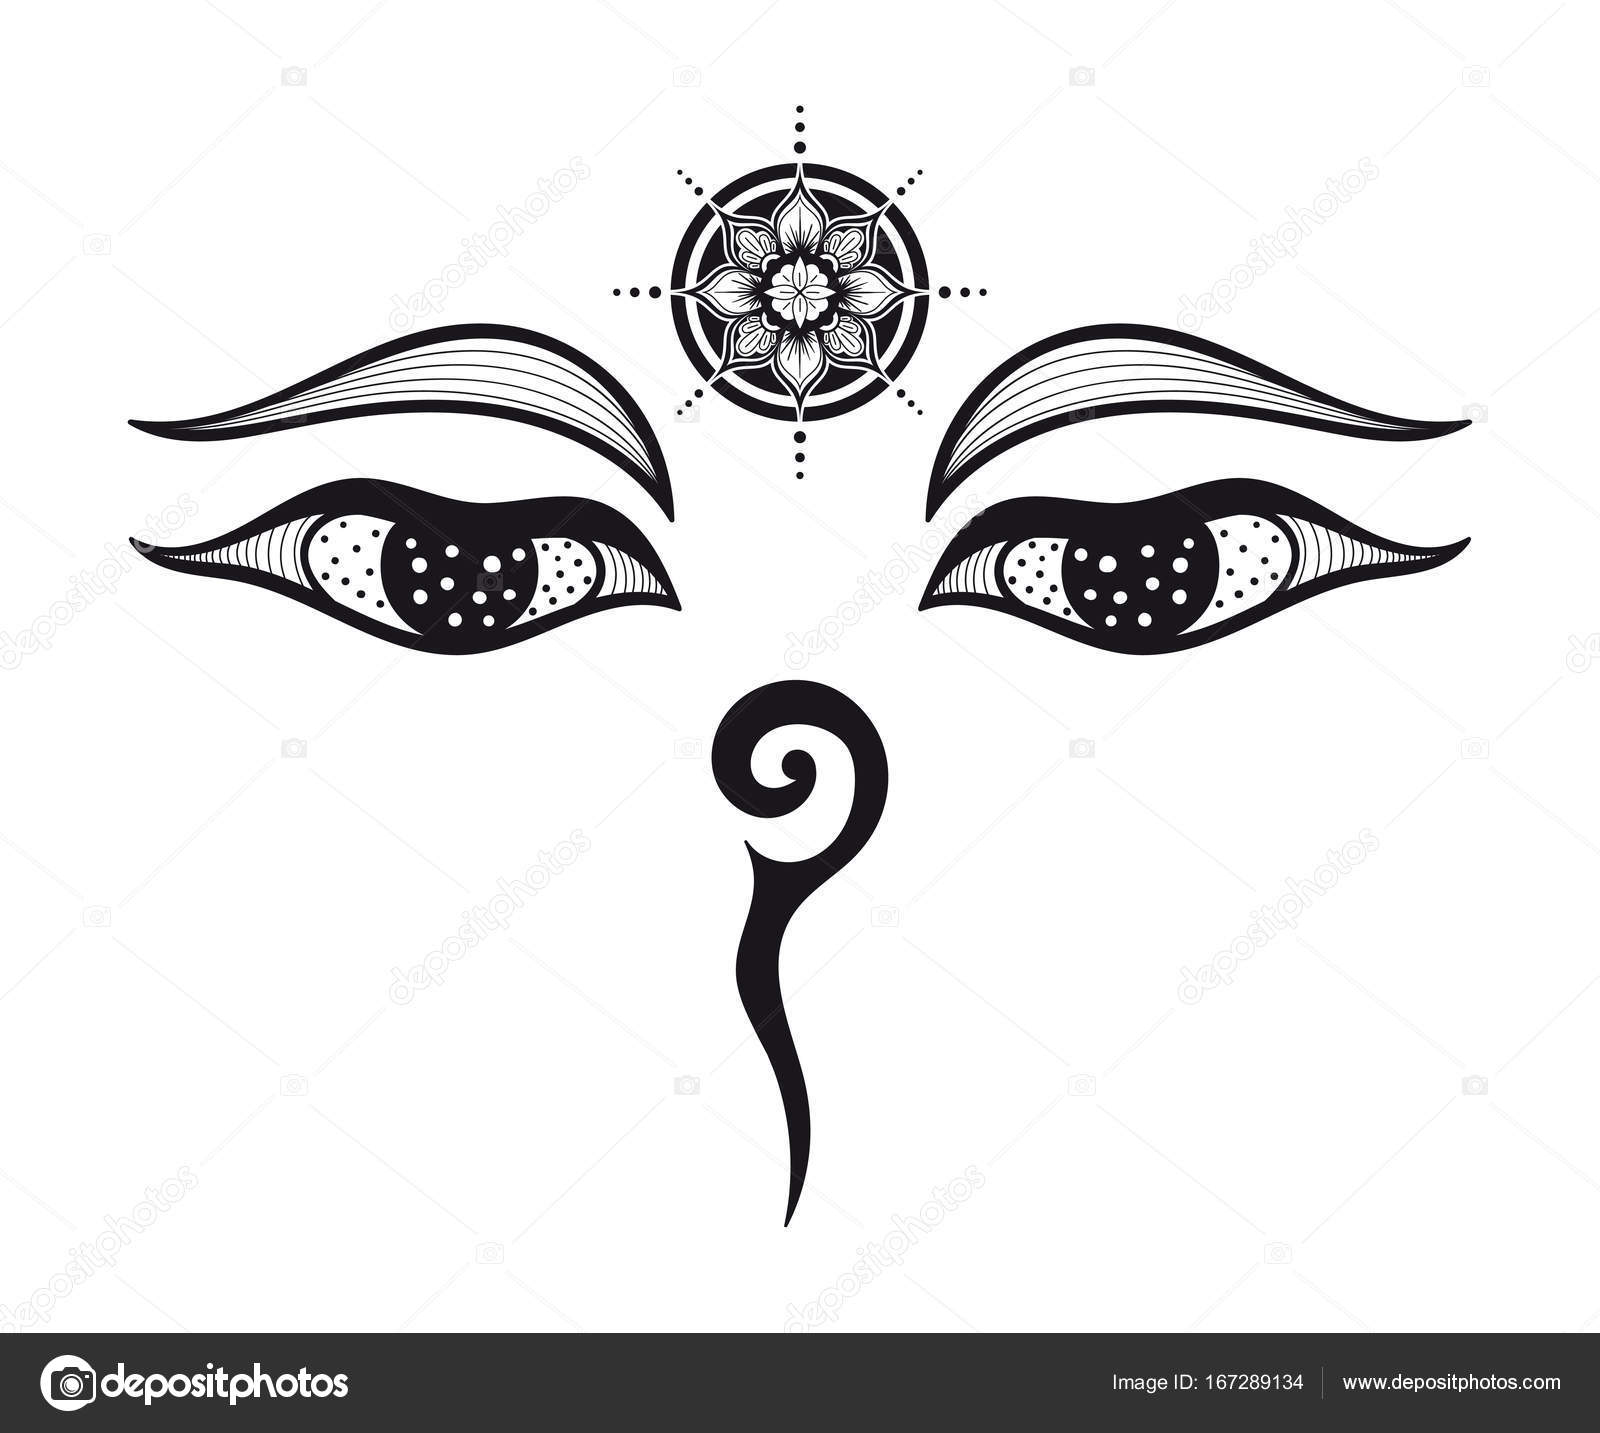 Buddha eyes design stock vector deneategmail 167289134 eyes of buddha buddhist eyes symbol wisdom and enlightenment nepal vector by deneategmail biocorpaavc Image collections